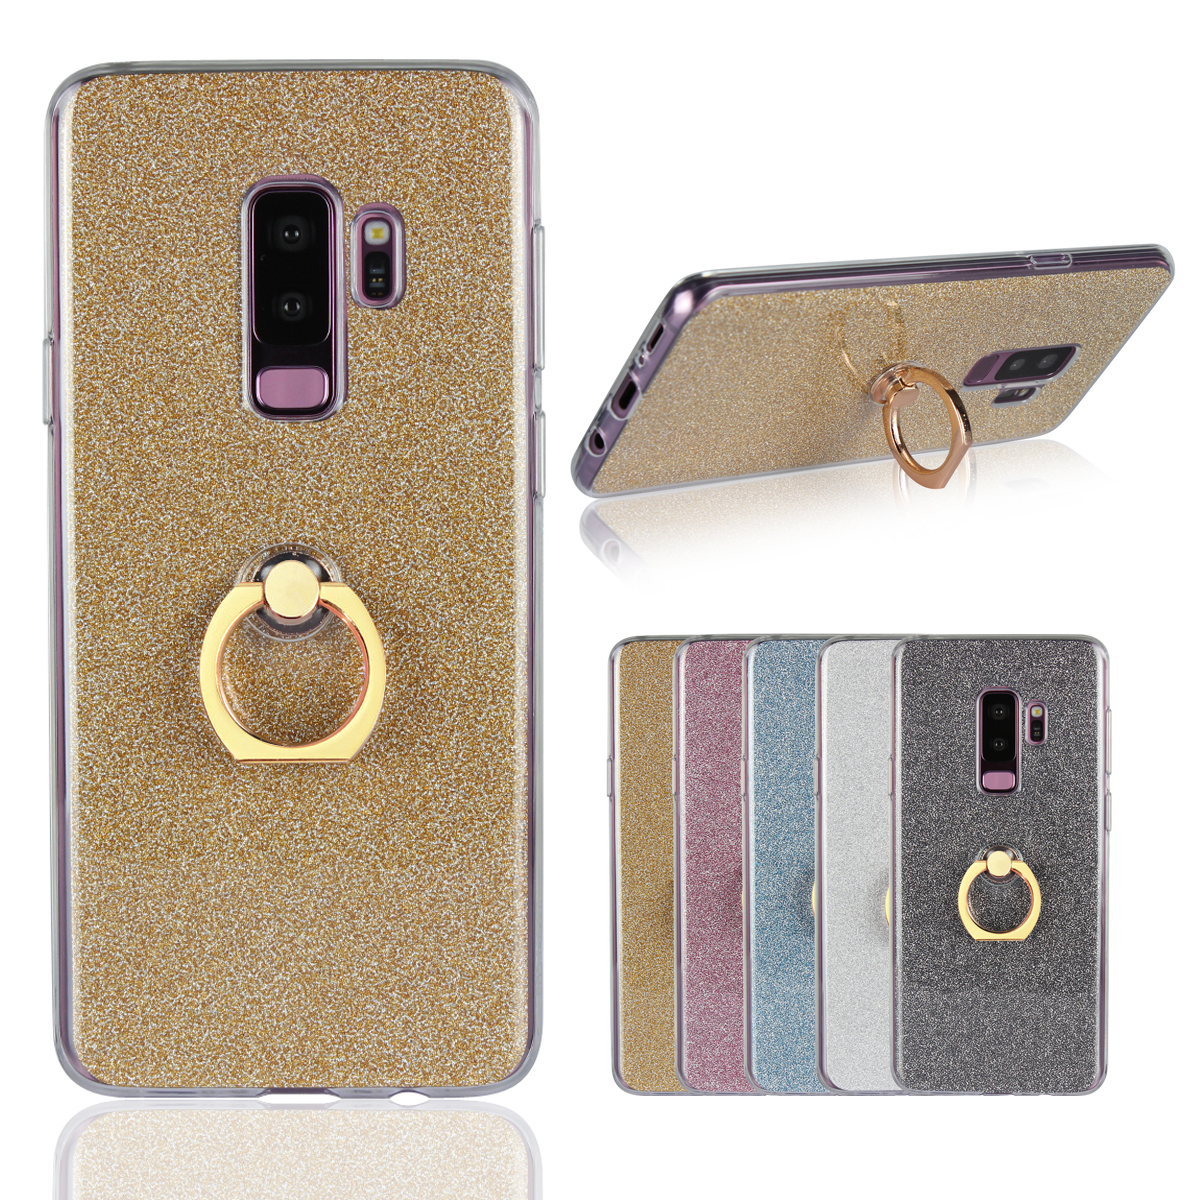 Soft Ring Phone Case Finger Holder Support Bling Cover for Samsung Galaxy S9 S8 A6 Plus S7 S6 S5 NOTE8 TPU Rubber Cases Luxury